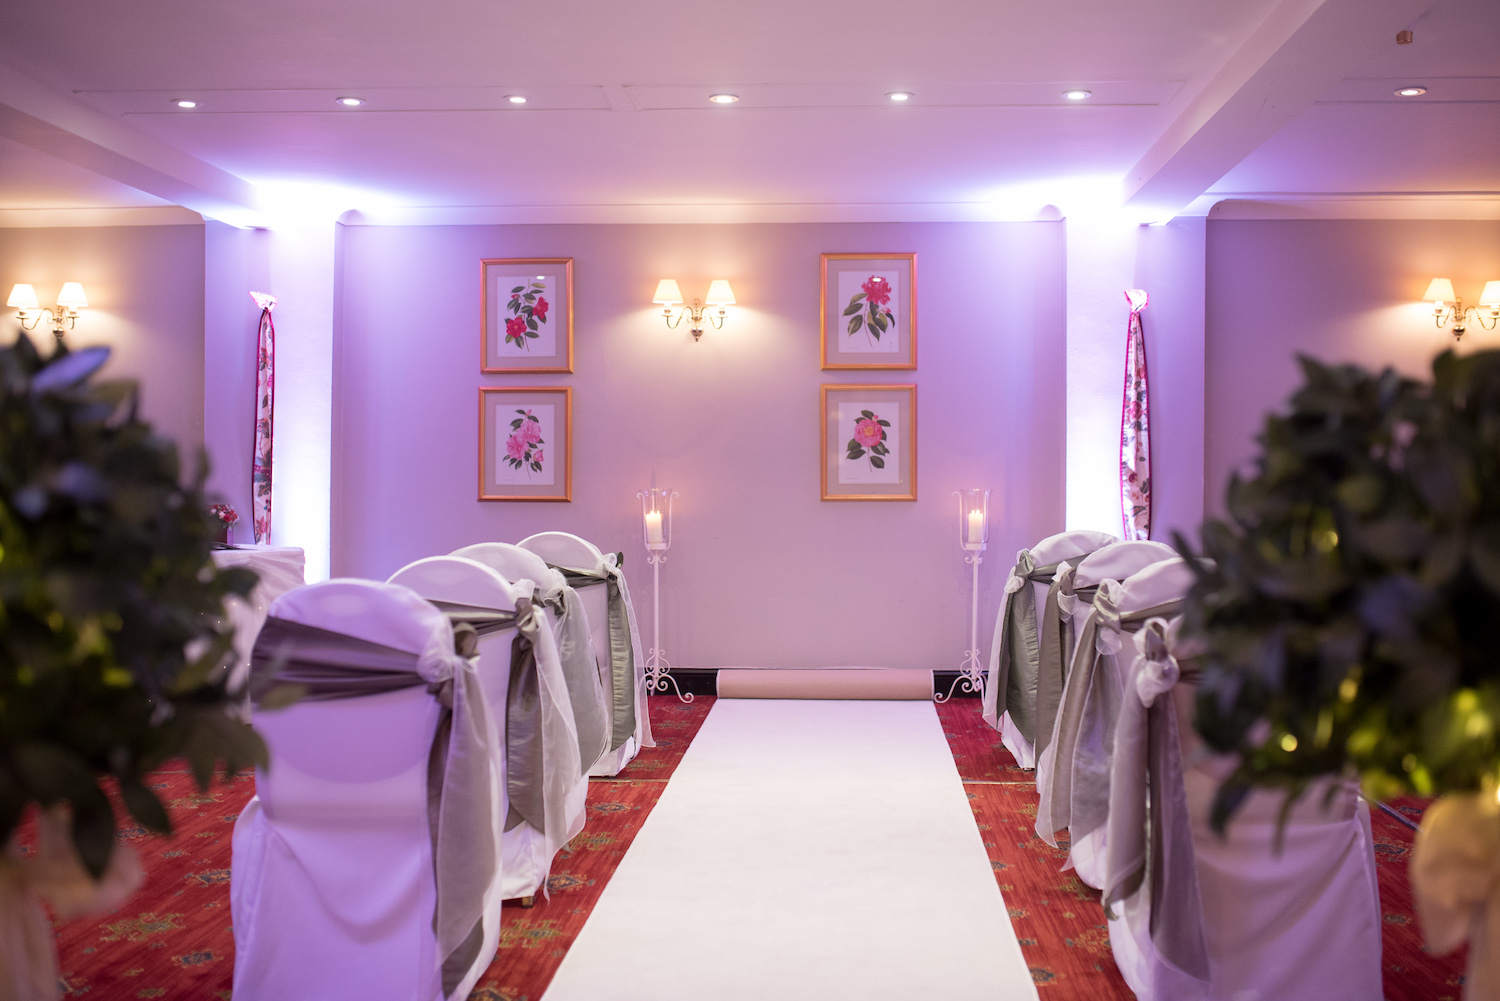 Civil ceremony wedding venue Hampshire with a beautiful wedding marriage room